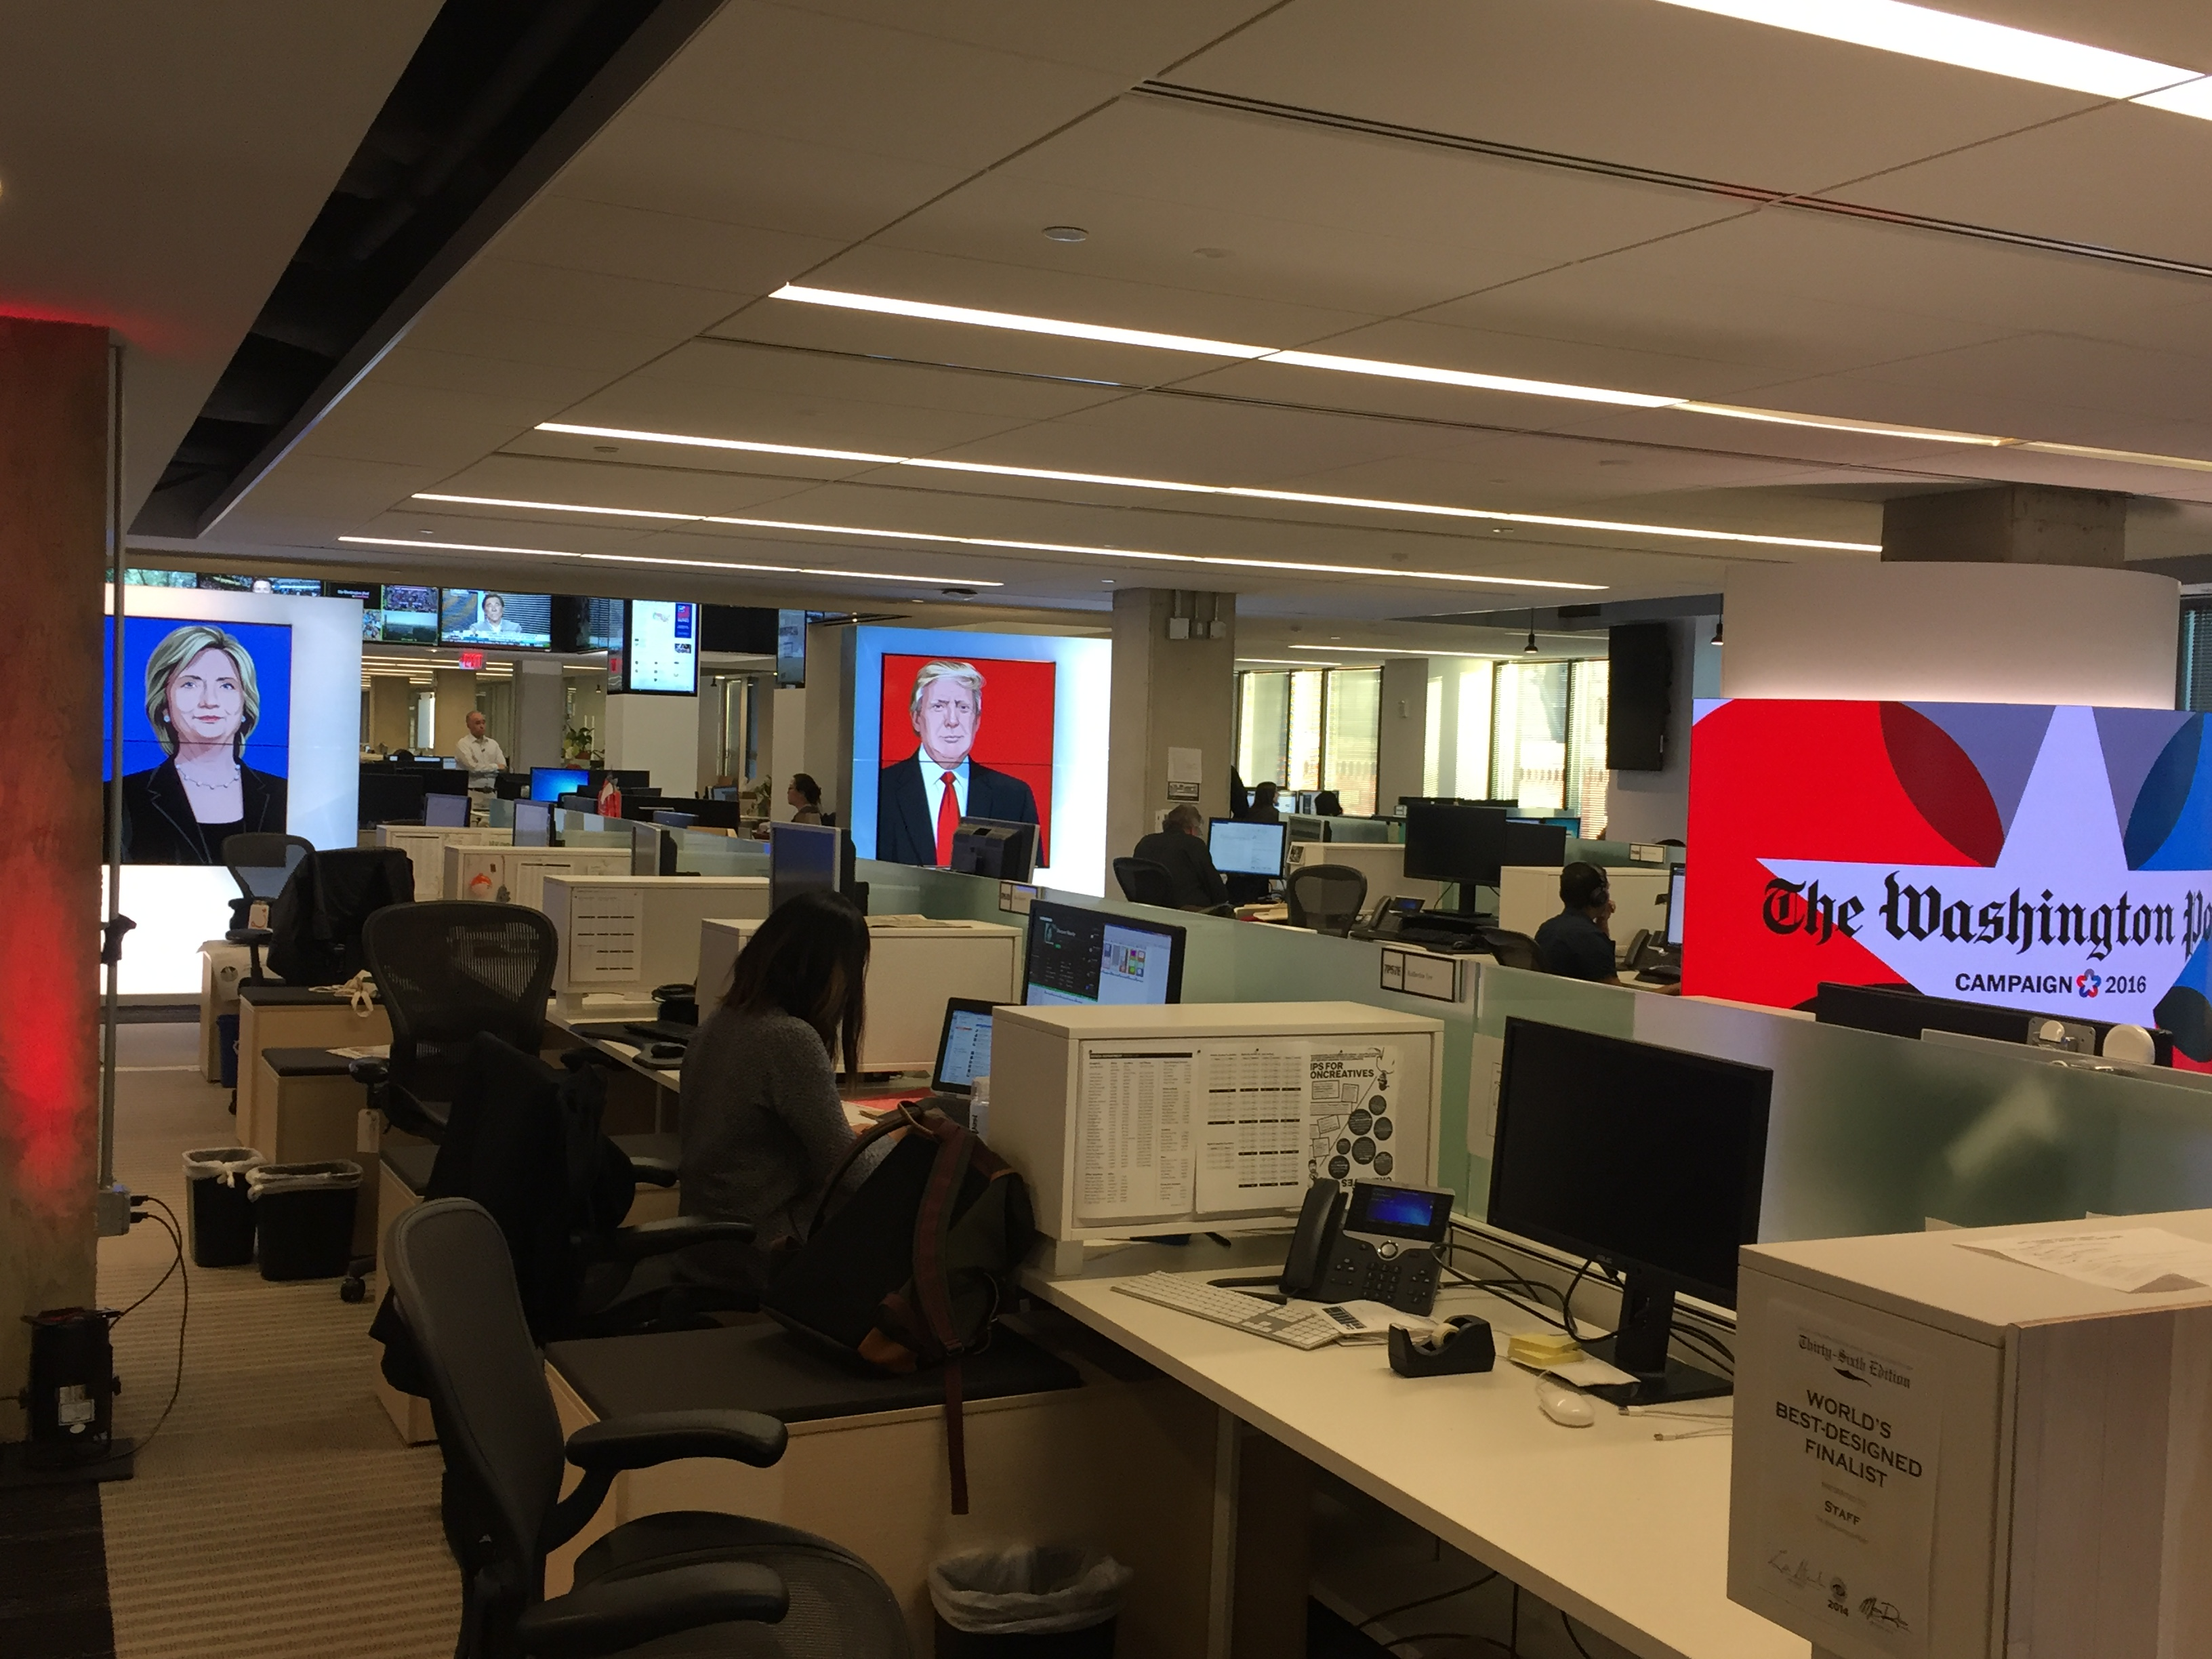 The view into The Washington Post's 7th floor newsroom the day before the election. (Photo by Kristen Hare/Poynter)